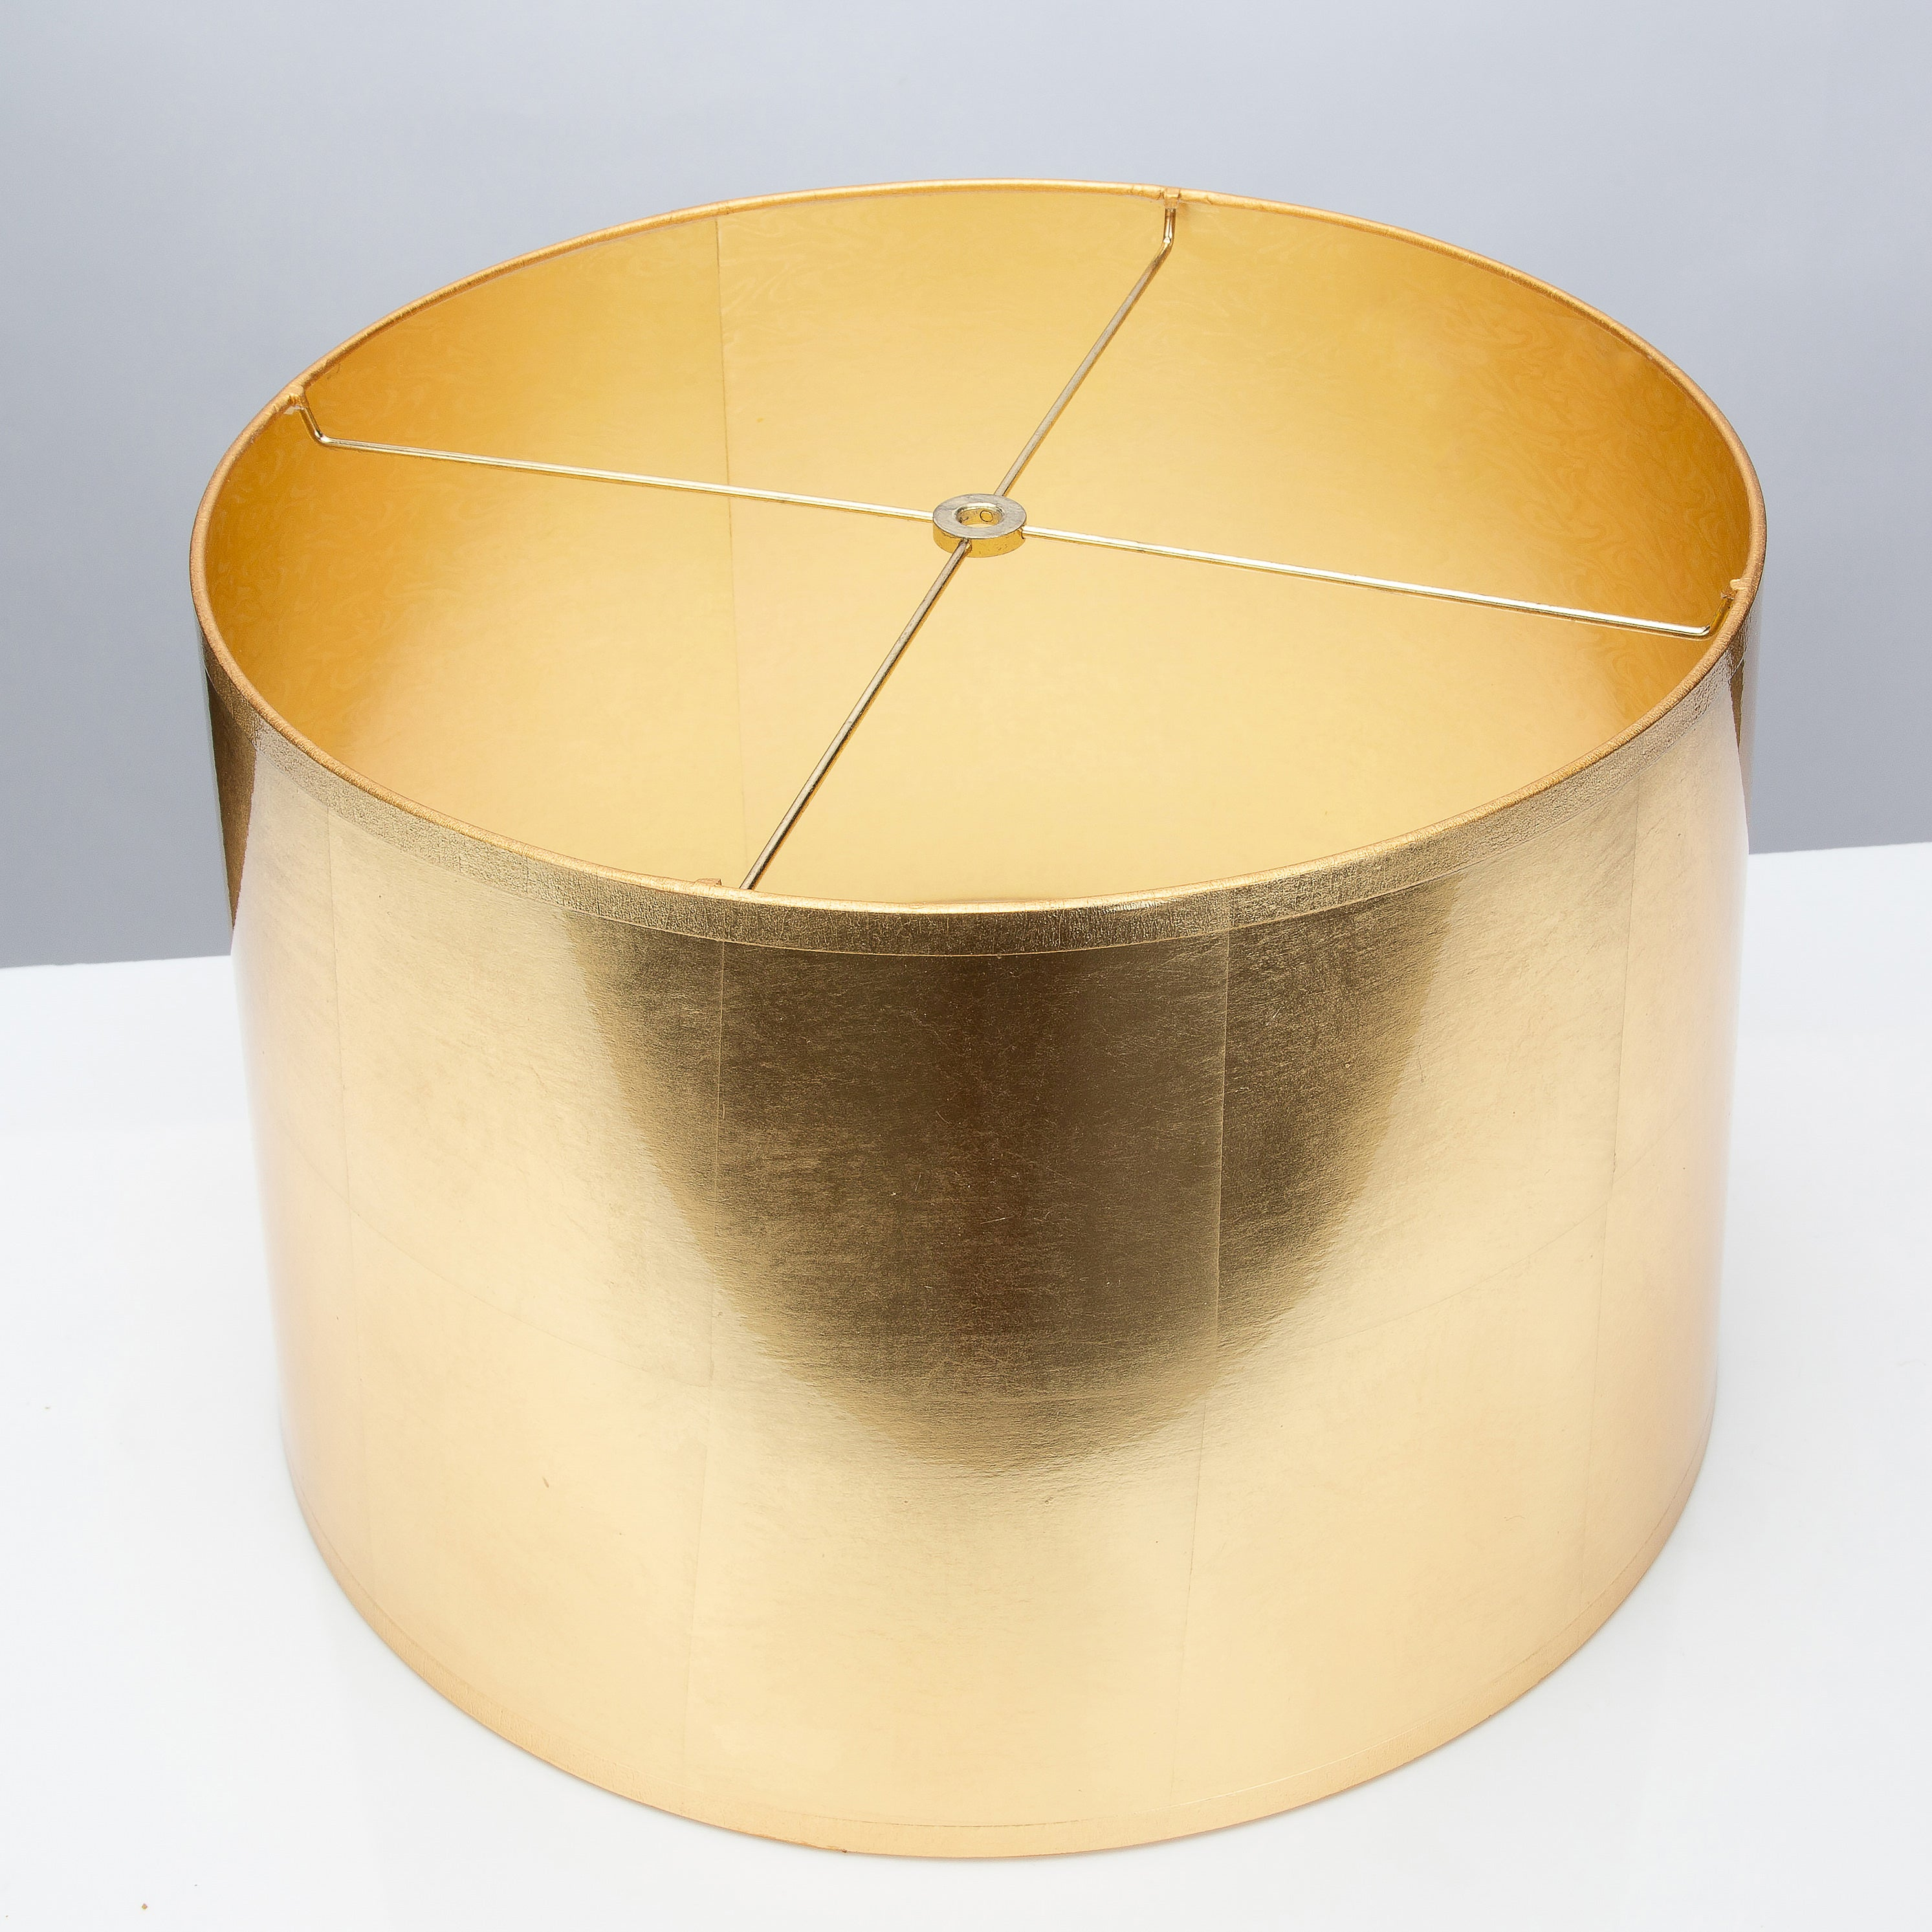 "Round Tapered Gold Foil Shade 15 x 16 x 10"" - Couture Lamps"